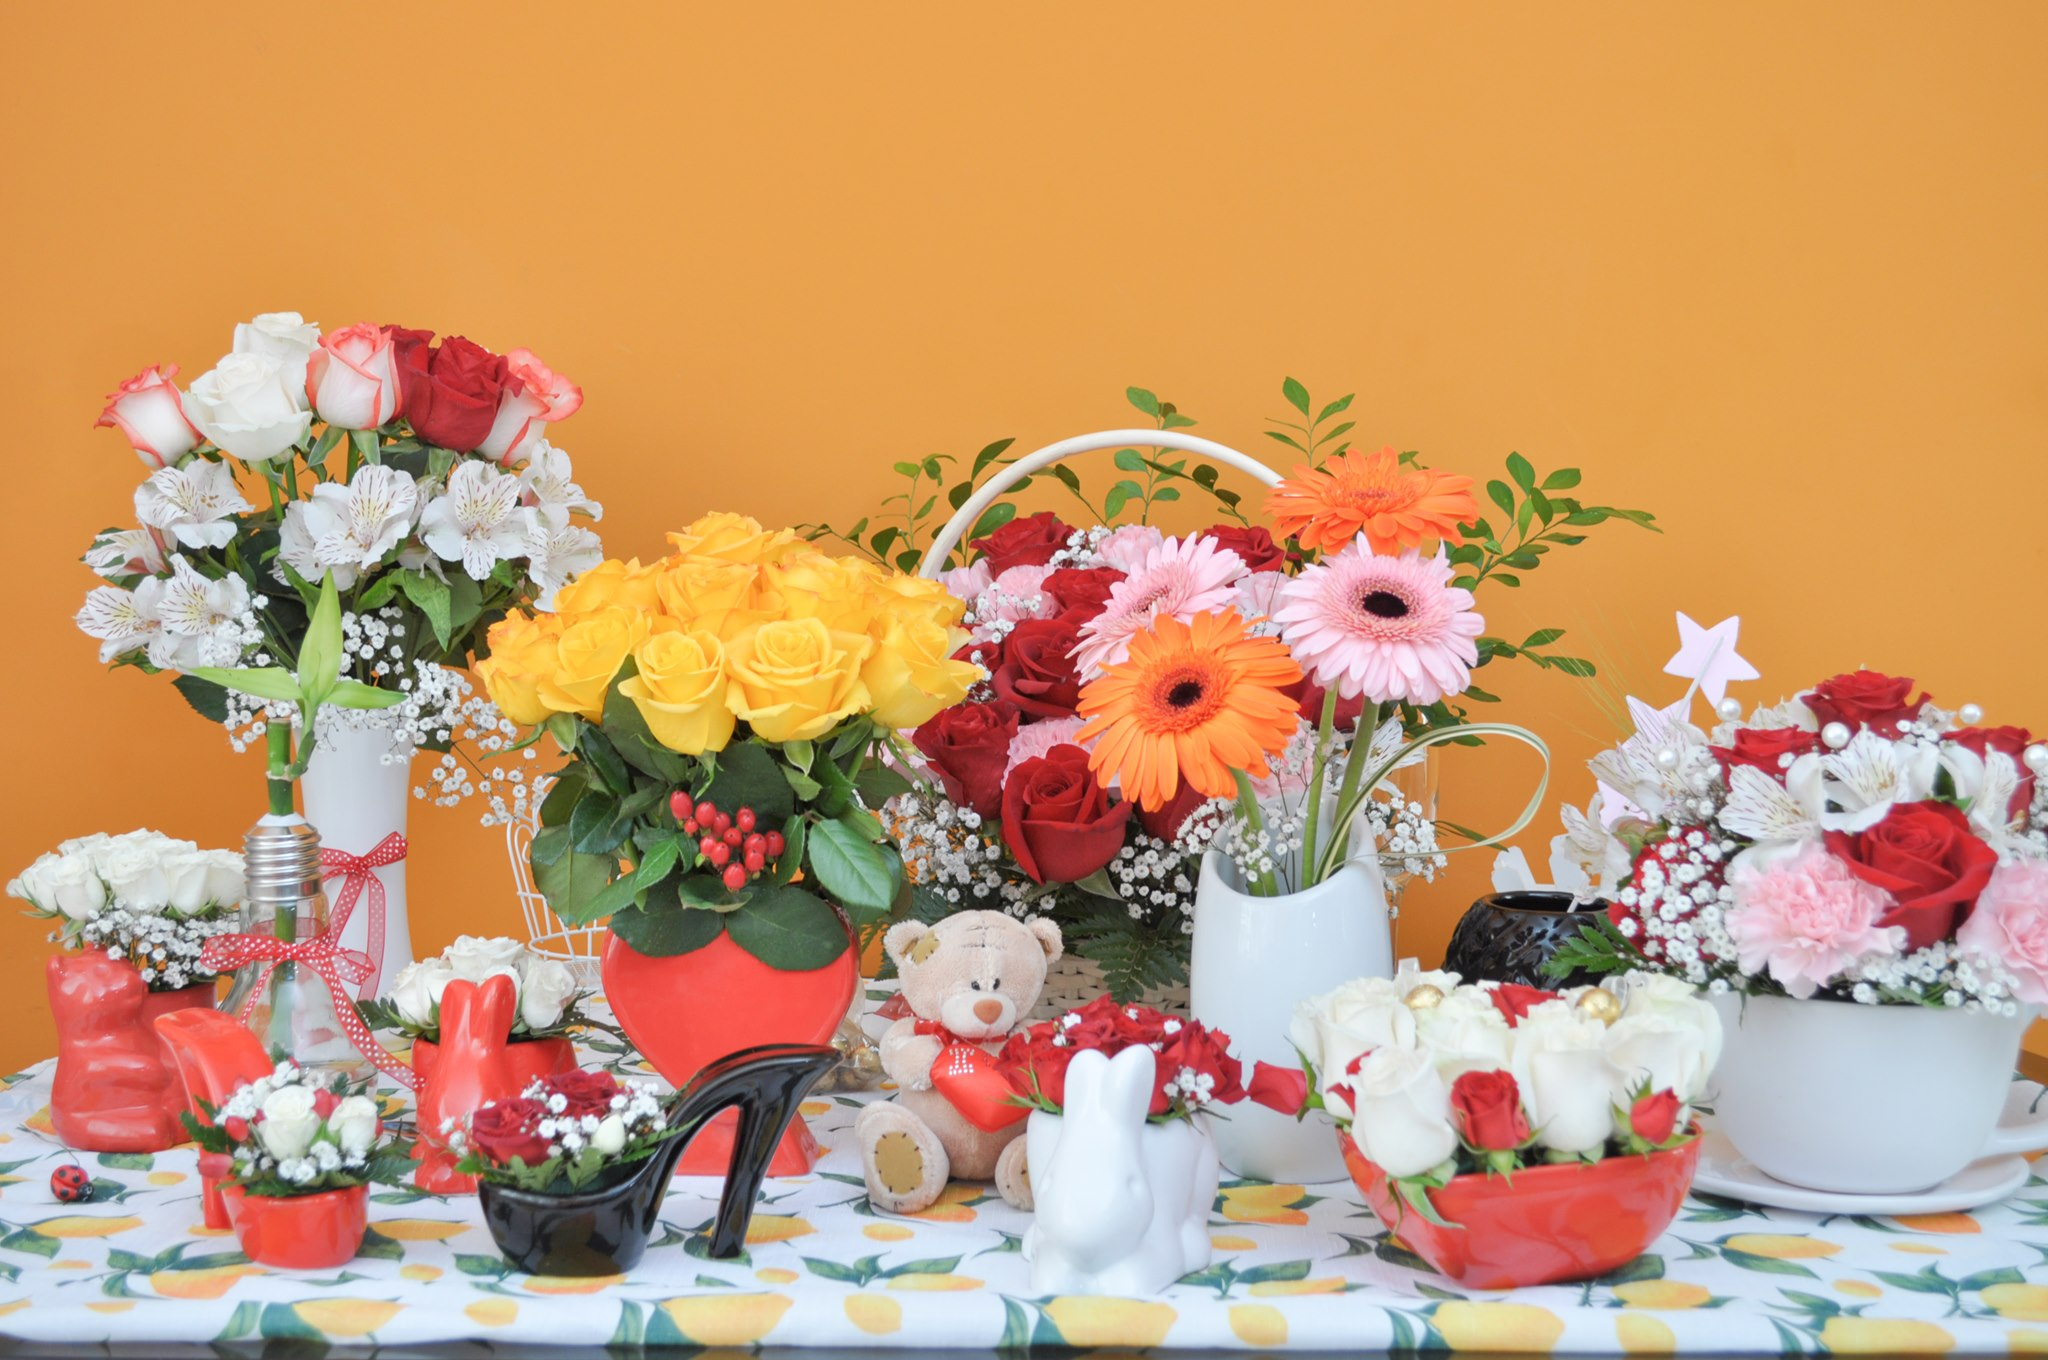 Petite Fleur Events By Margot Loli  - Imagen 1 - Visitanos!